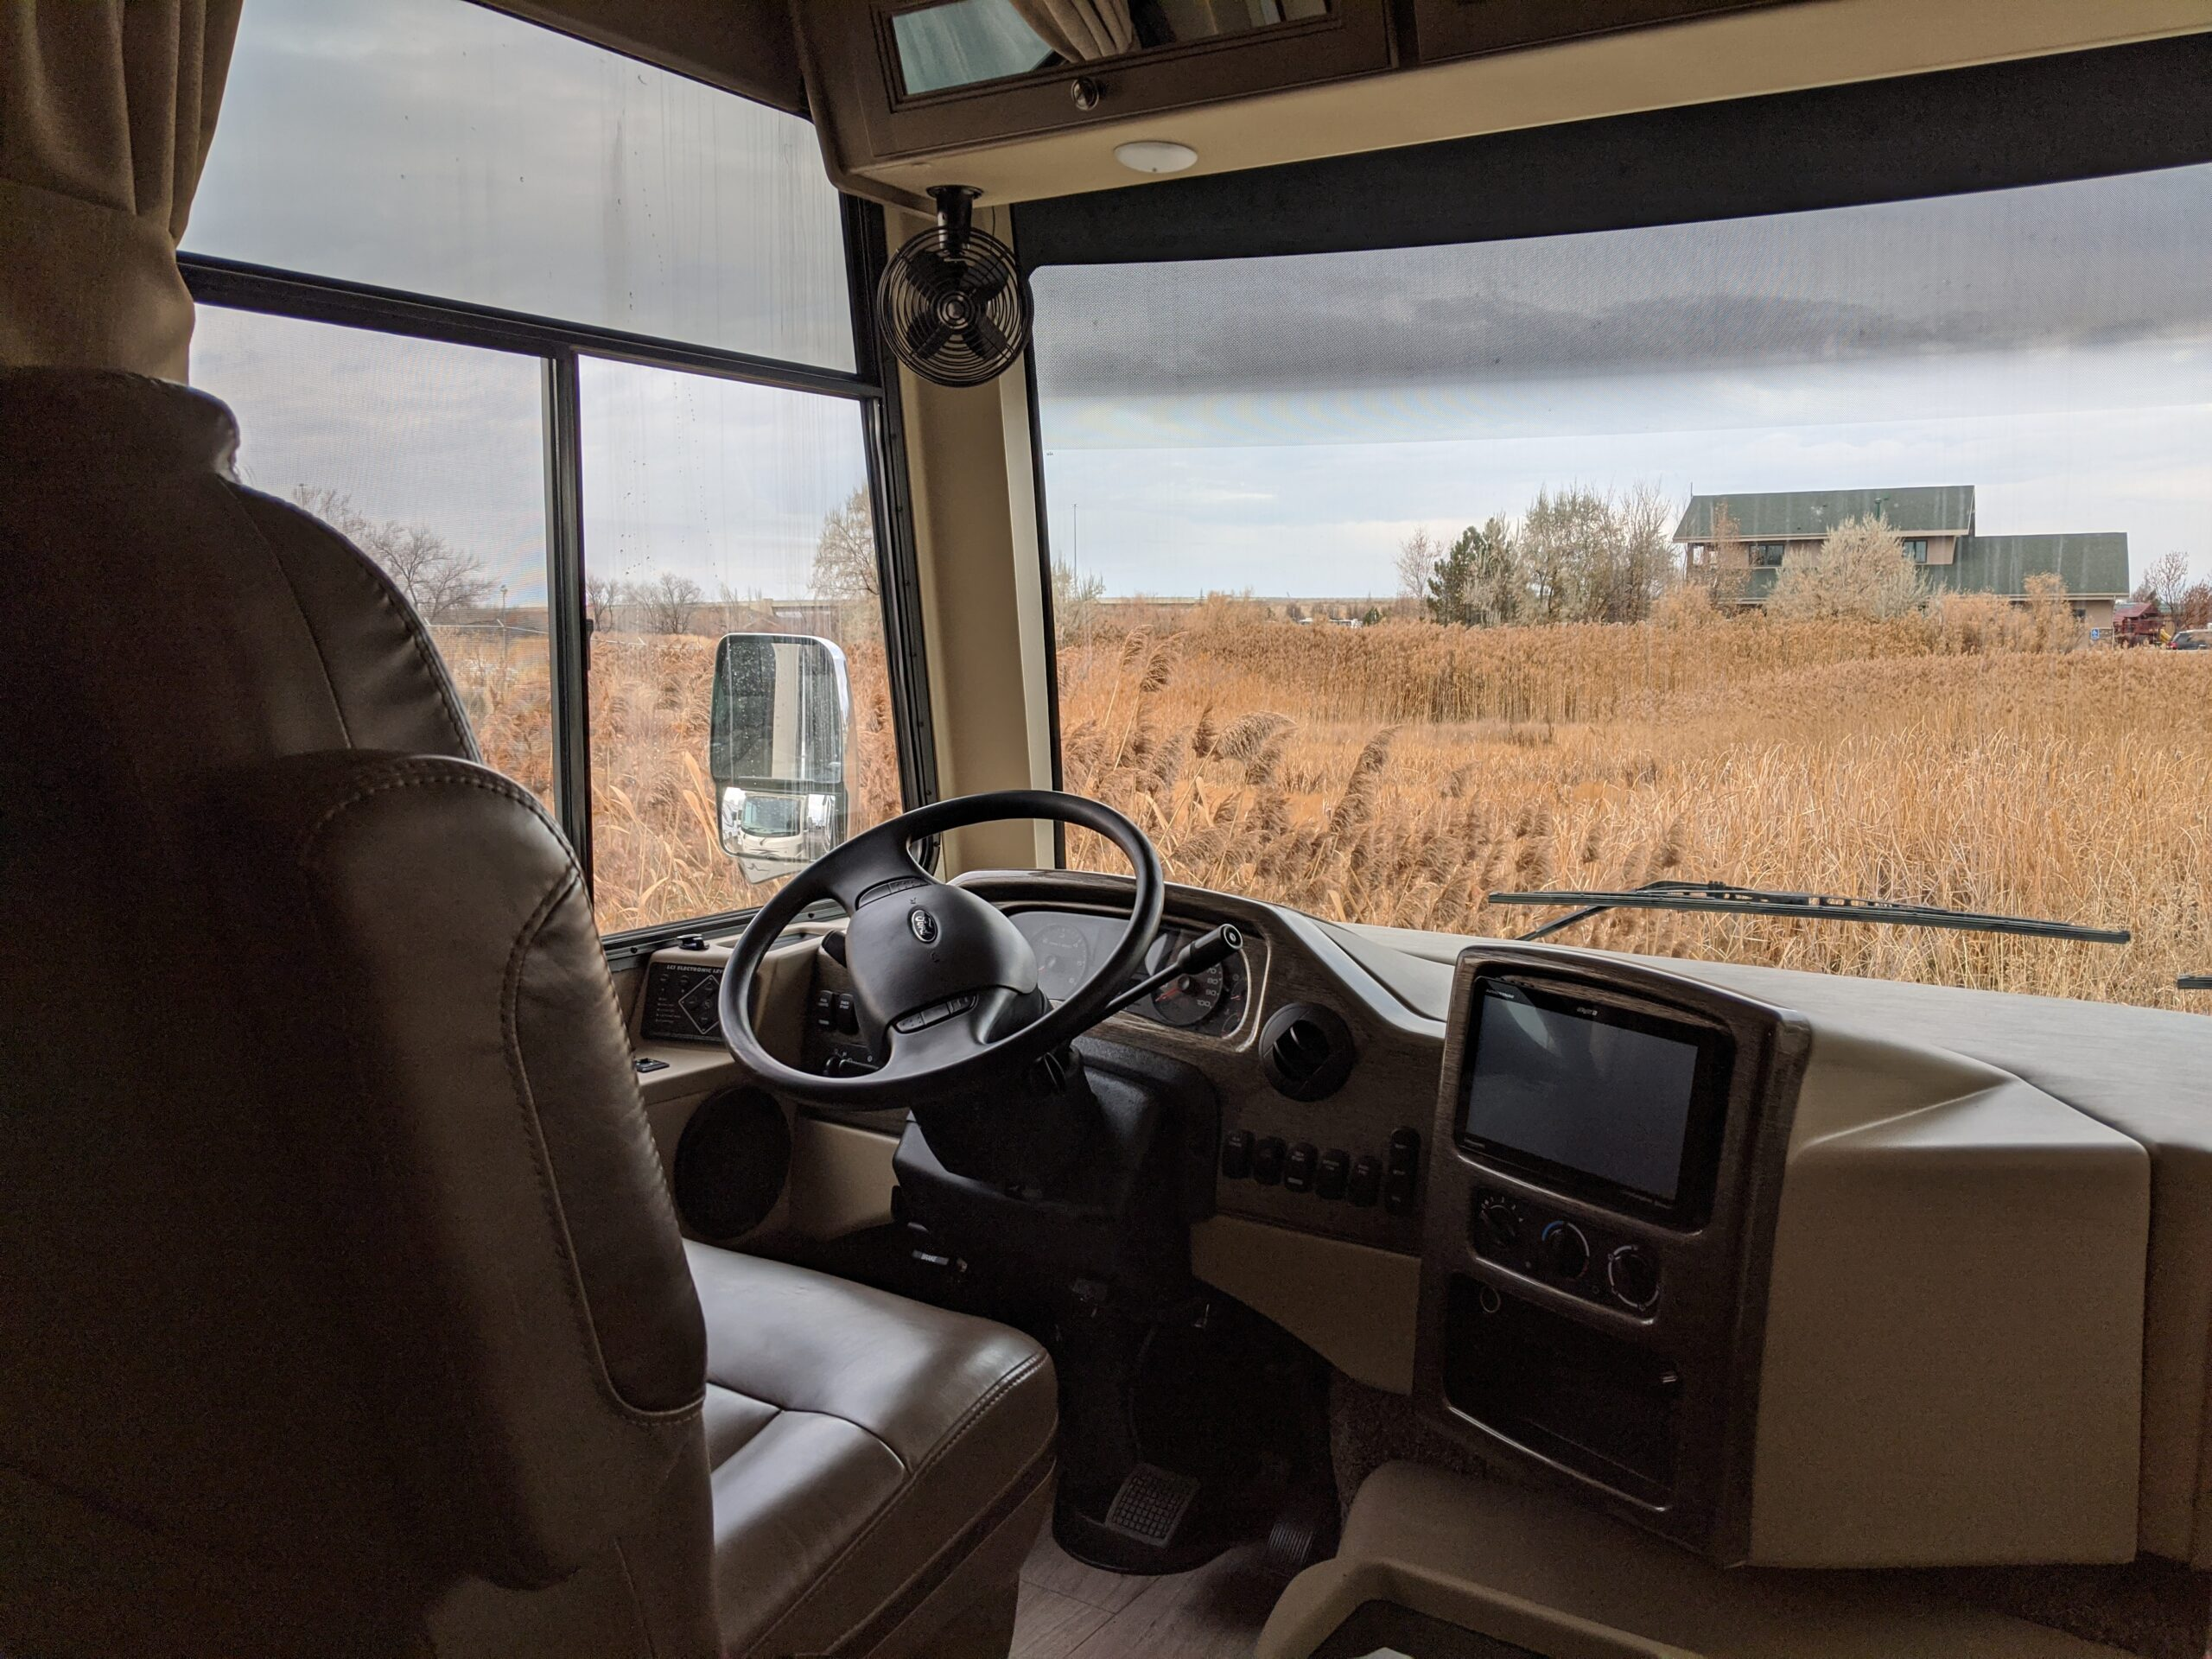 Driver's seat of a 34R Windsport RV Rental